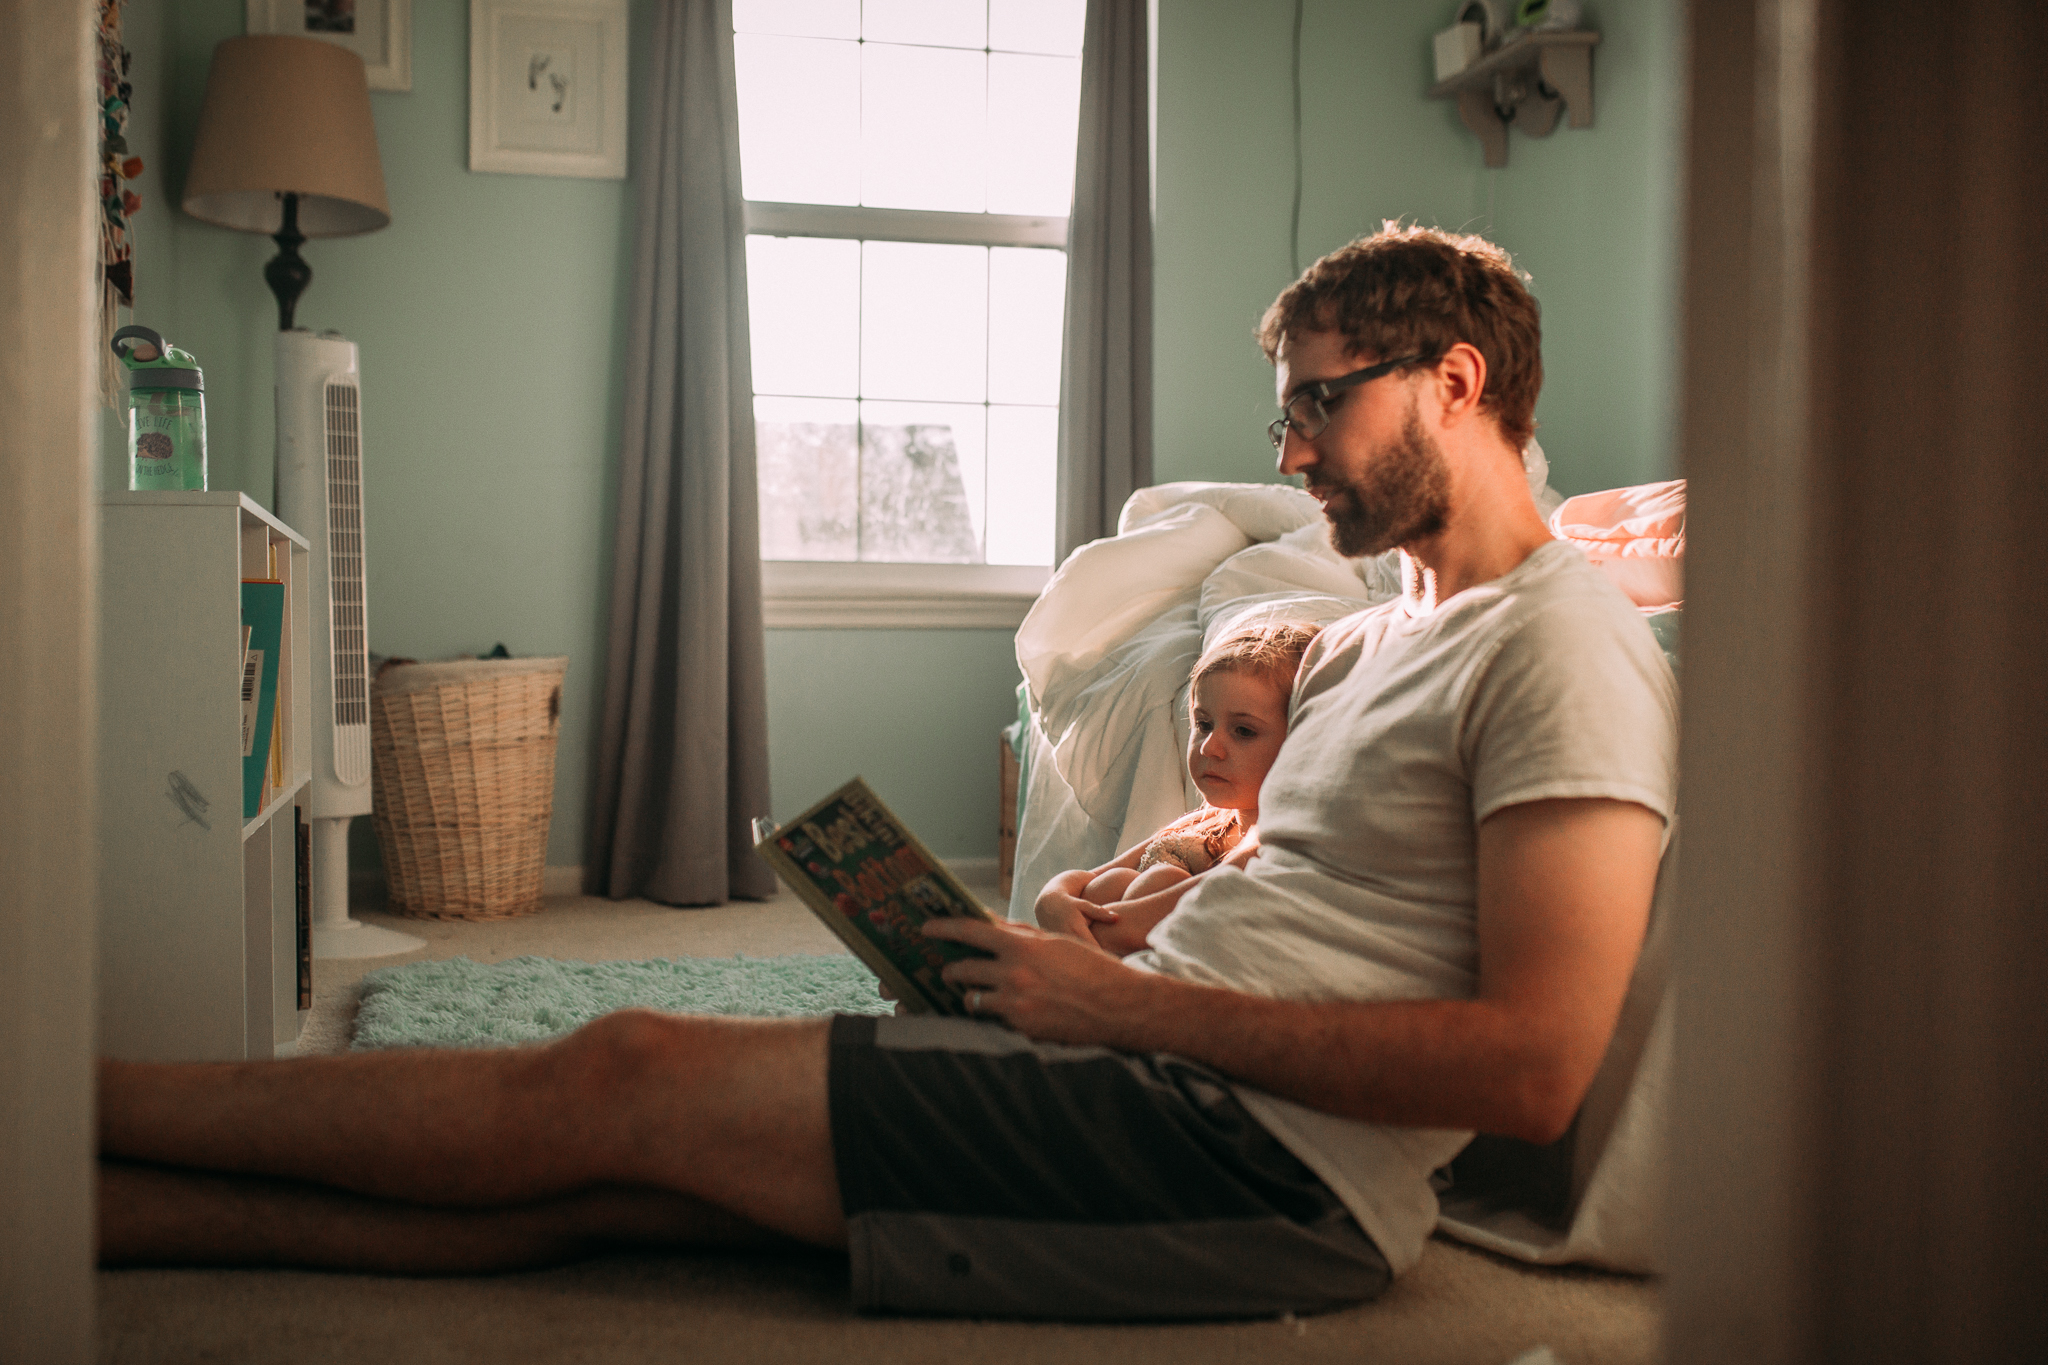 father daughter reading bedtime routine summer Ashburn Loudoun Northern Virginia family lifestyle documentary childhood Marti Austin Photography